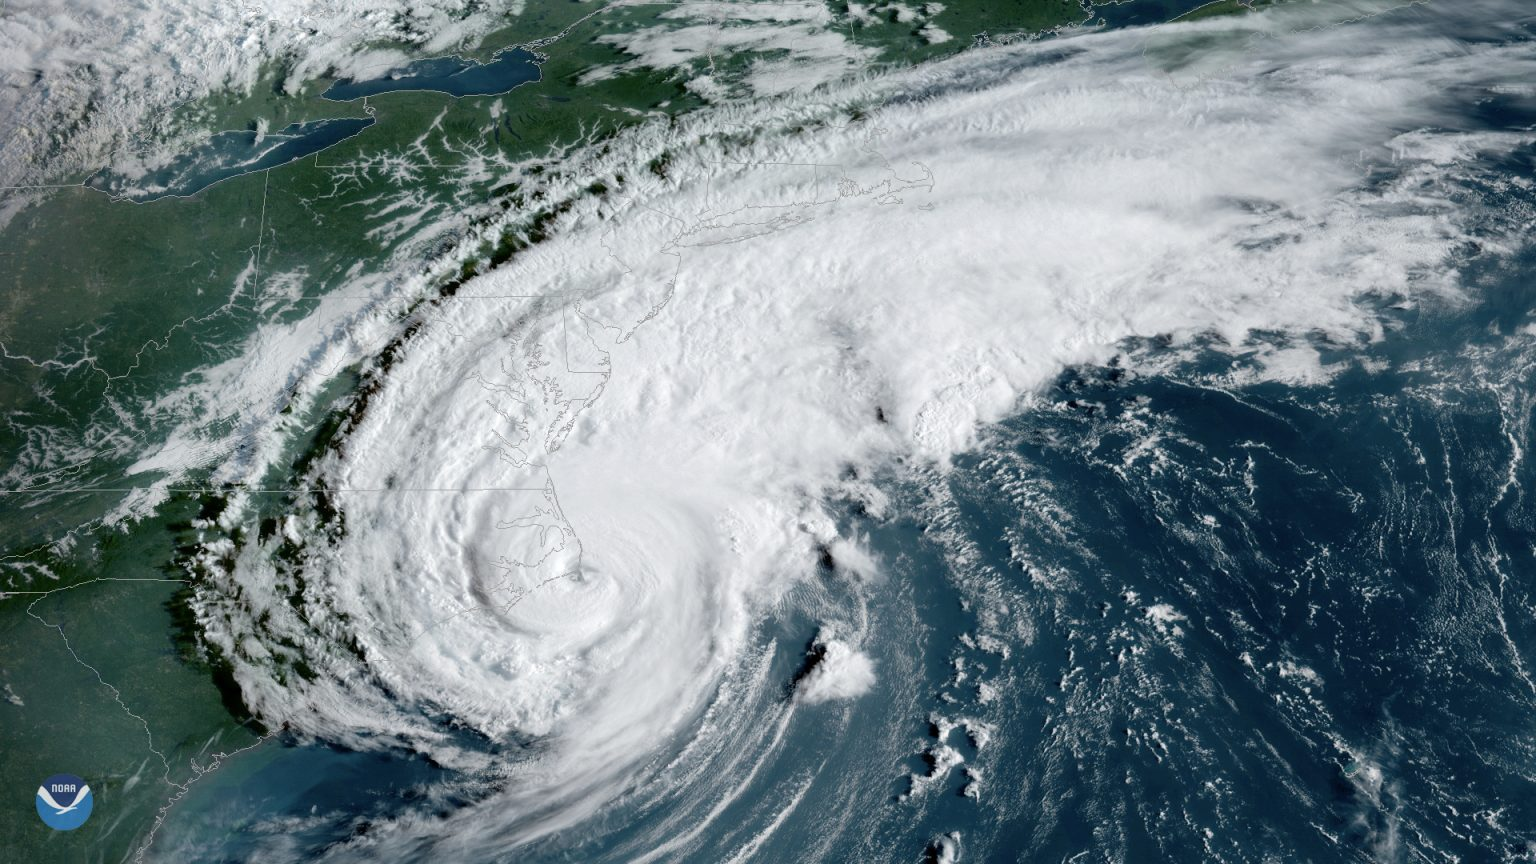 Hurricane Dorian appears as a swirl of white clouds over the US coast